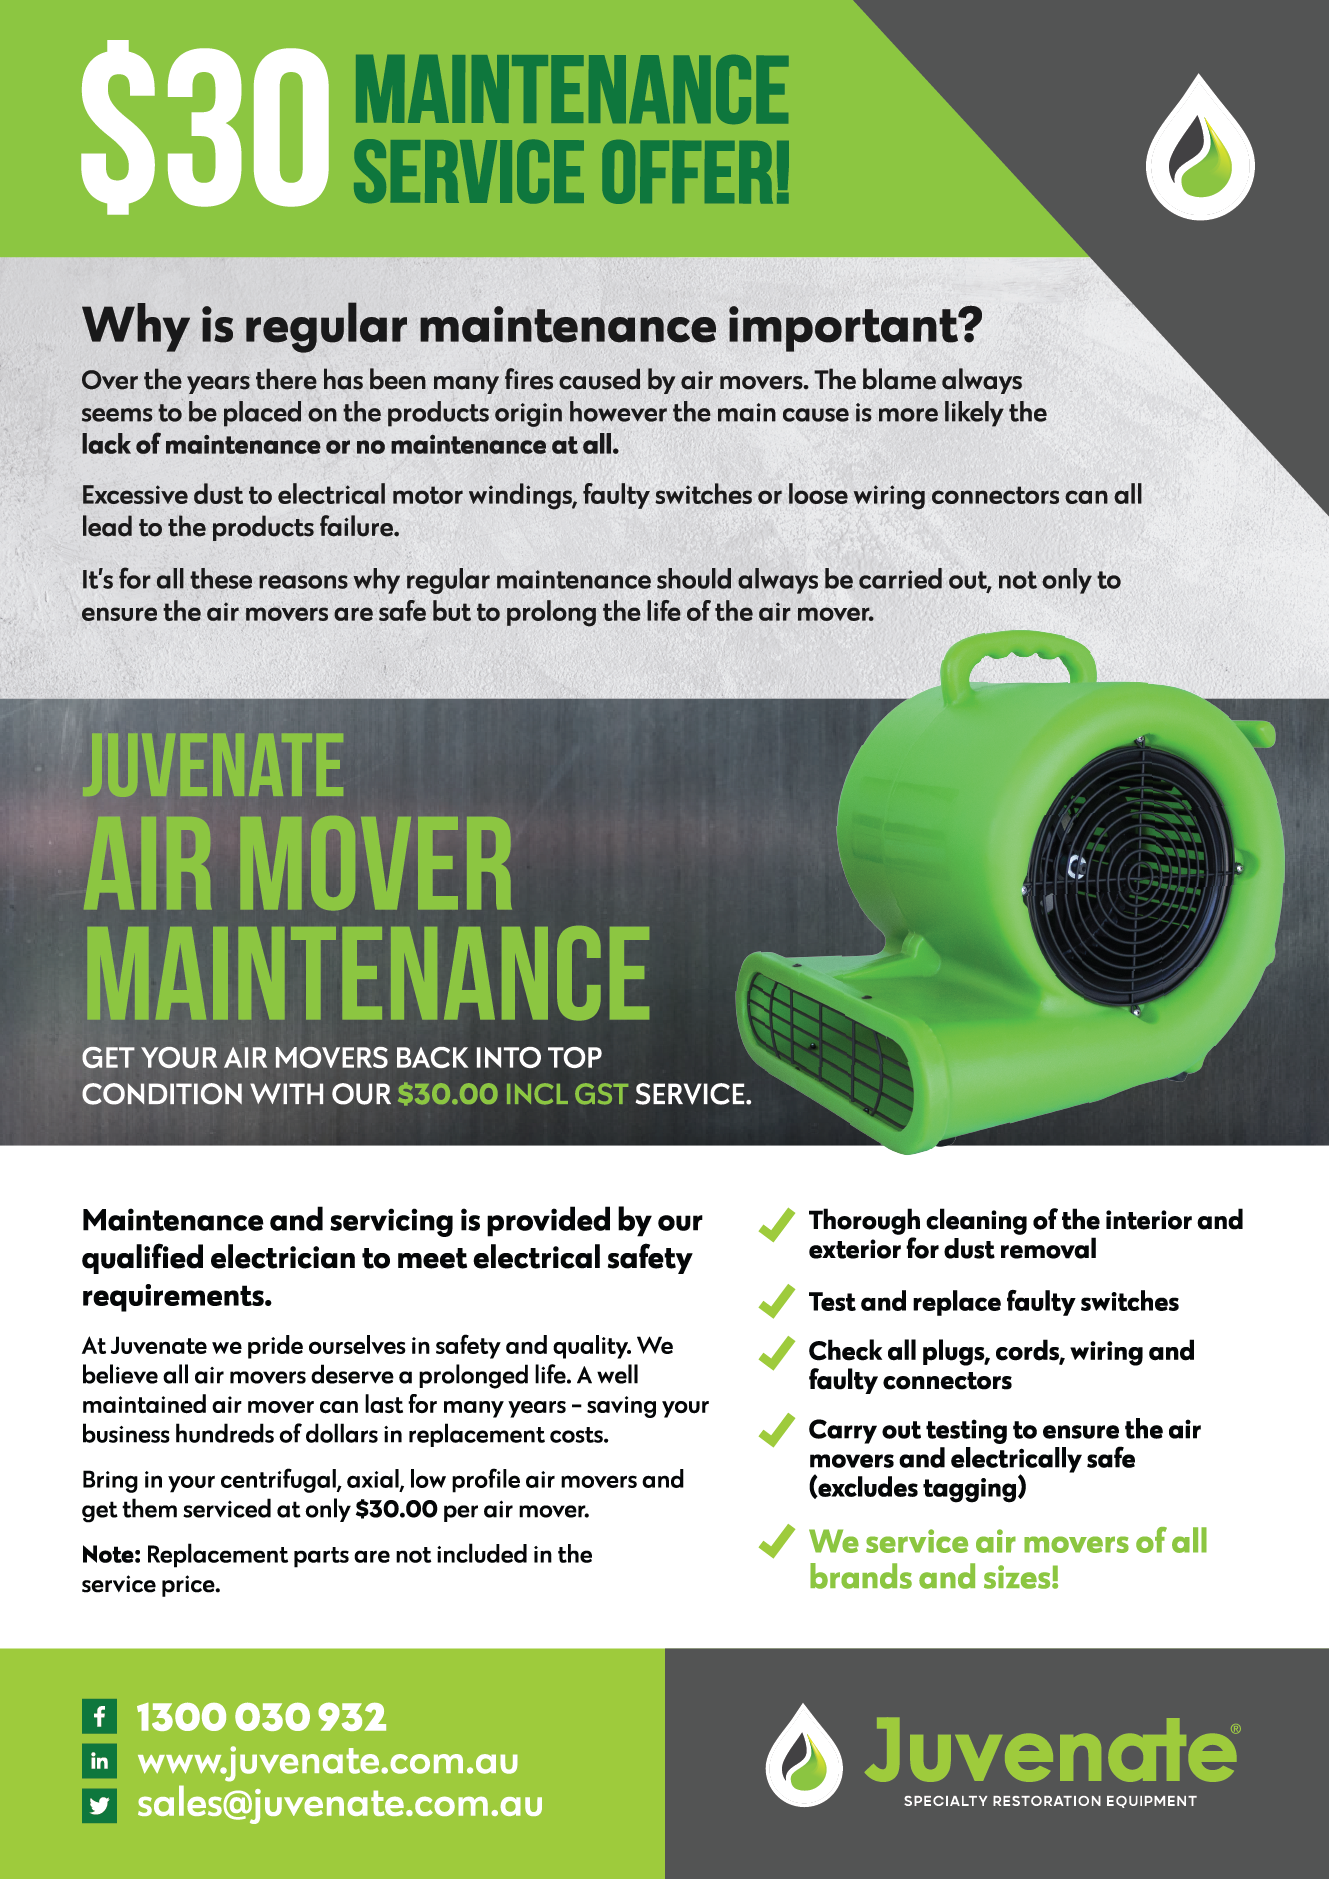 air movers maintenance